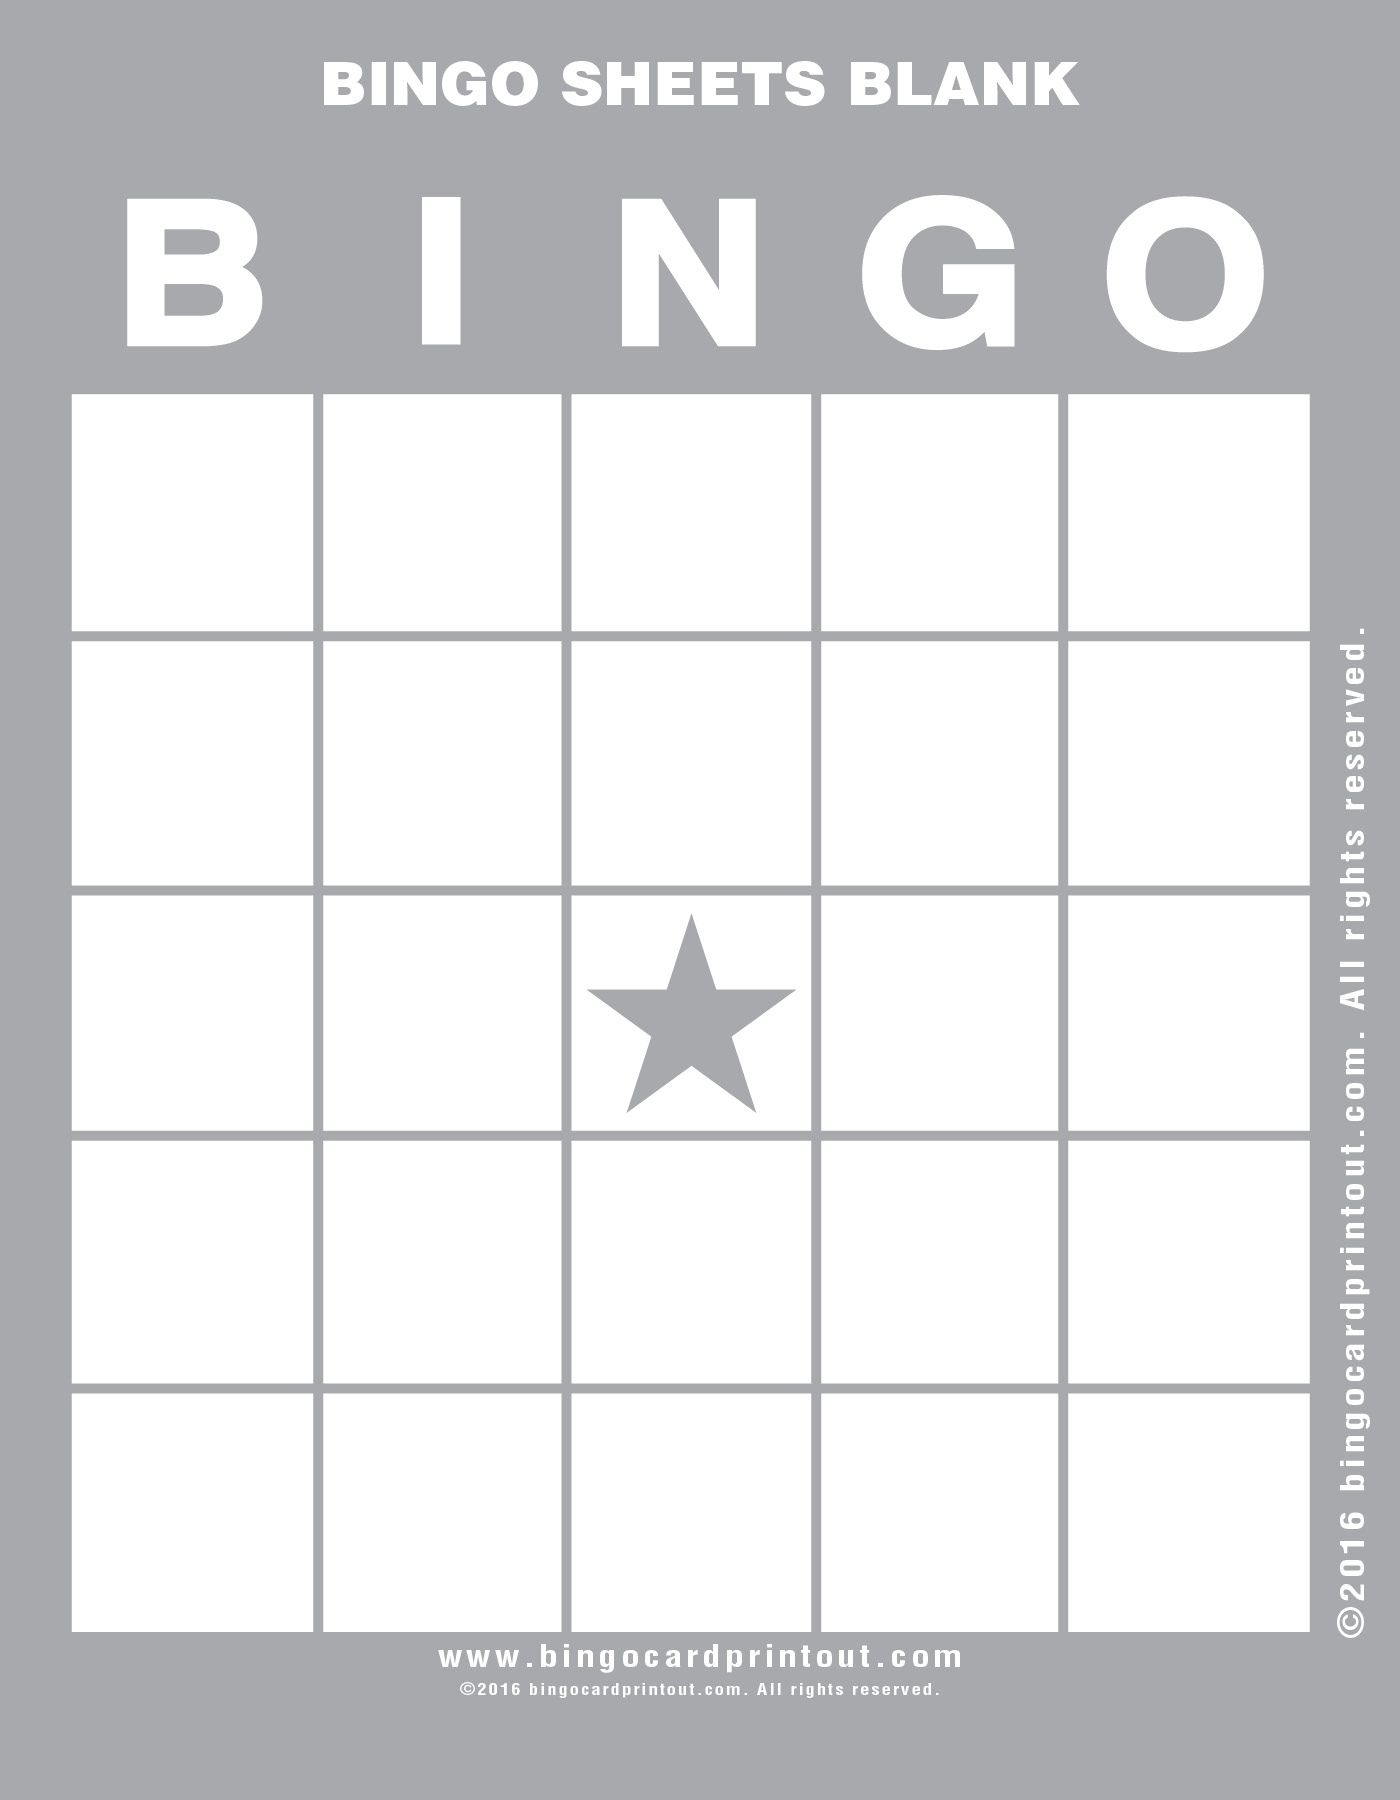 Bingo Sheets Blank 9 | Bingo Sheets, Bingo Cards, Bingo Template